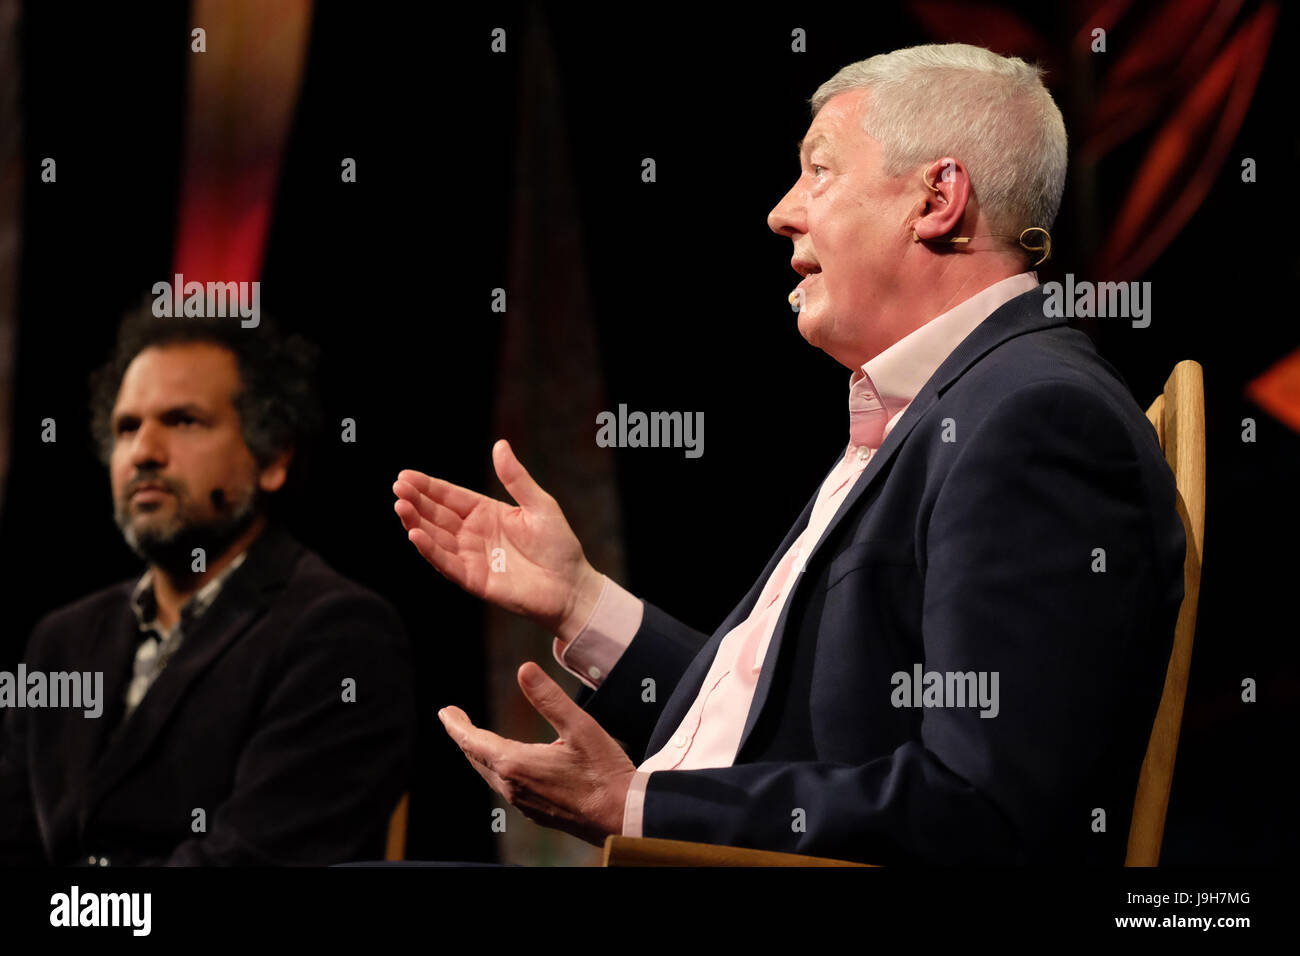 Hay Festival 2017 - Hay on Wye, Wales, UK - Friday 2nd June 2017 - Alan Johnson former Labour politician on stage - Stock Image